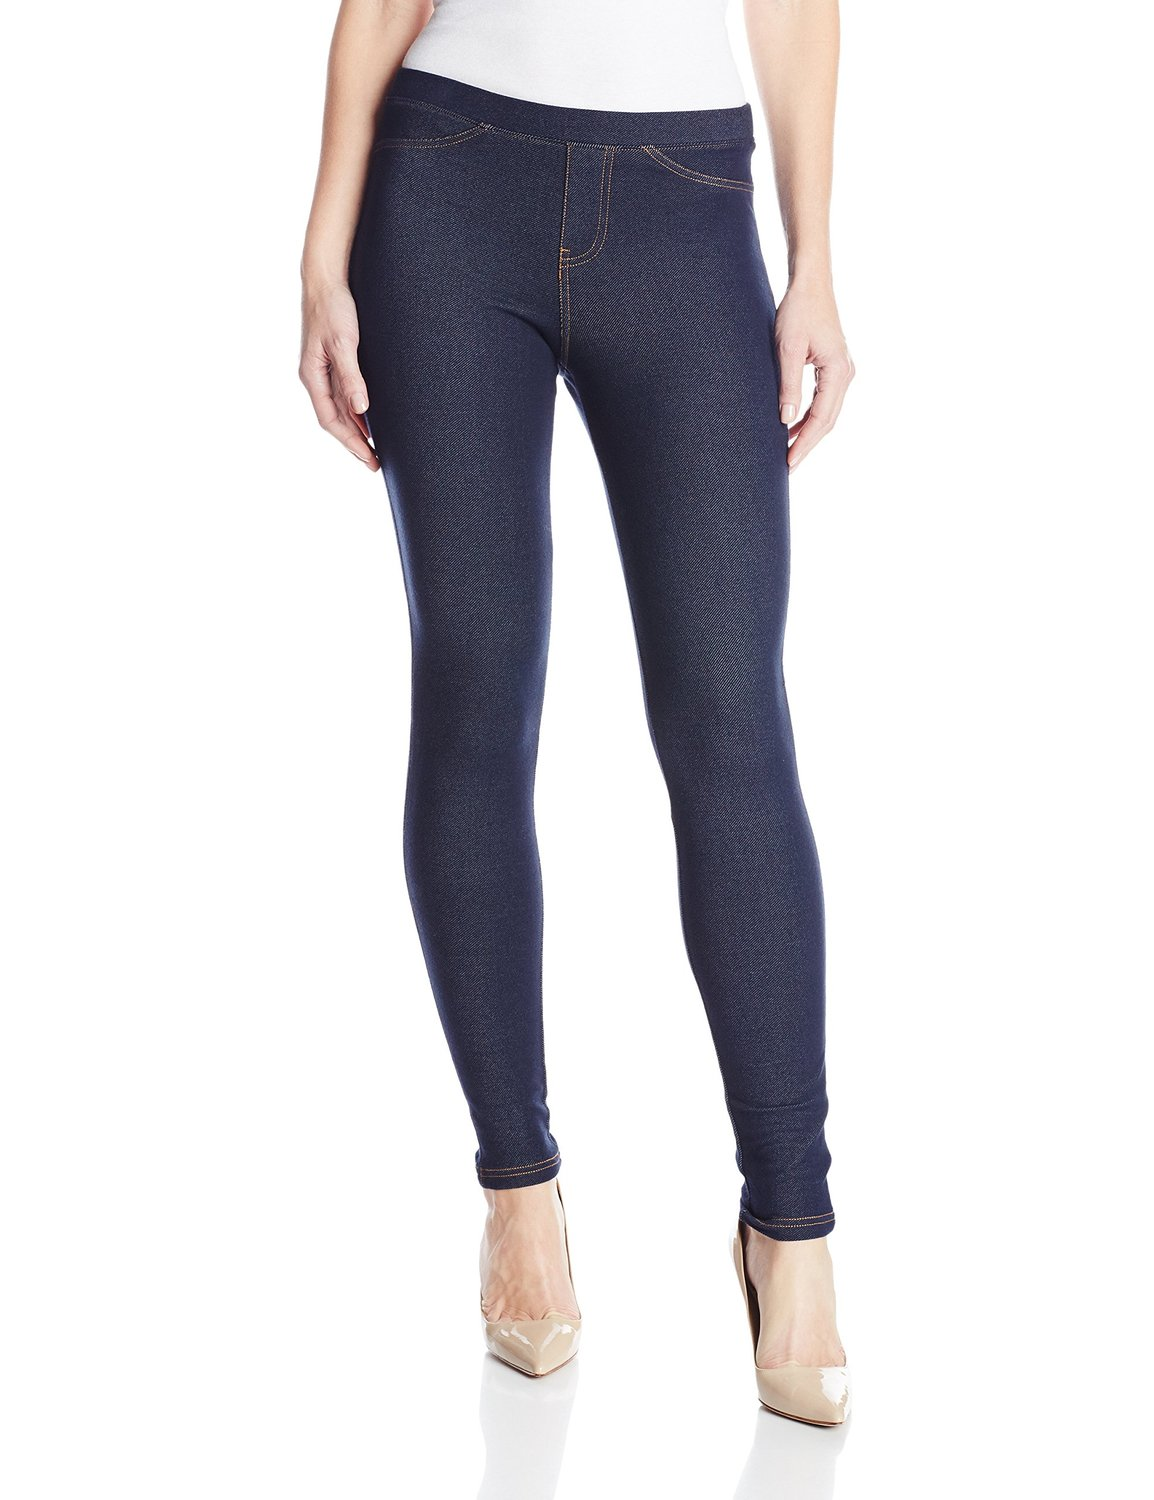 Ultra soft and lightweight jean Leggings perfect for everyday wear HUE Women's Super Smooth Denim Legging. by HUE. $ - $ $ 22 $ 70 00 Prime. FREE Shipping on eligible orders. Some sizes/colors are Prime eligible. 4 out of 5 stars Product Features Casual jean pull-on legging with comfortable stretch.